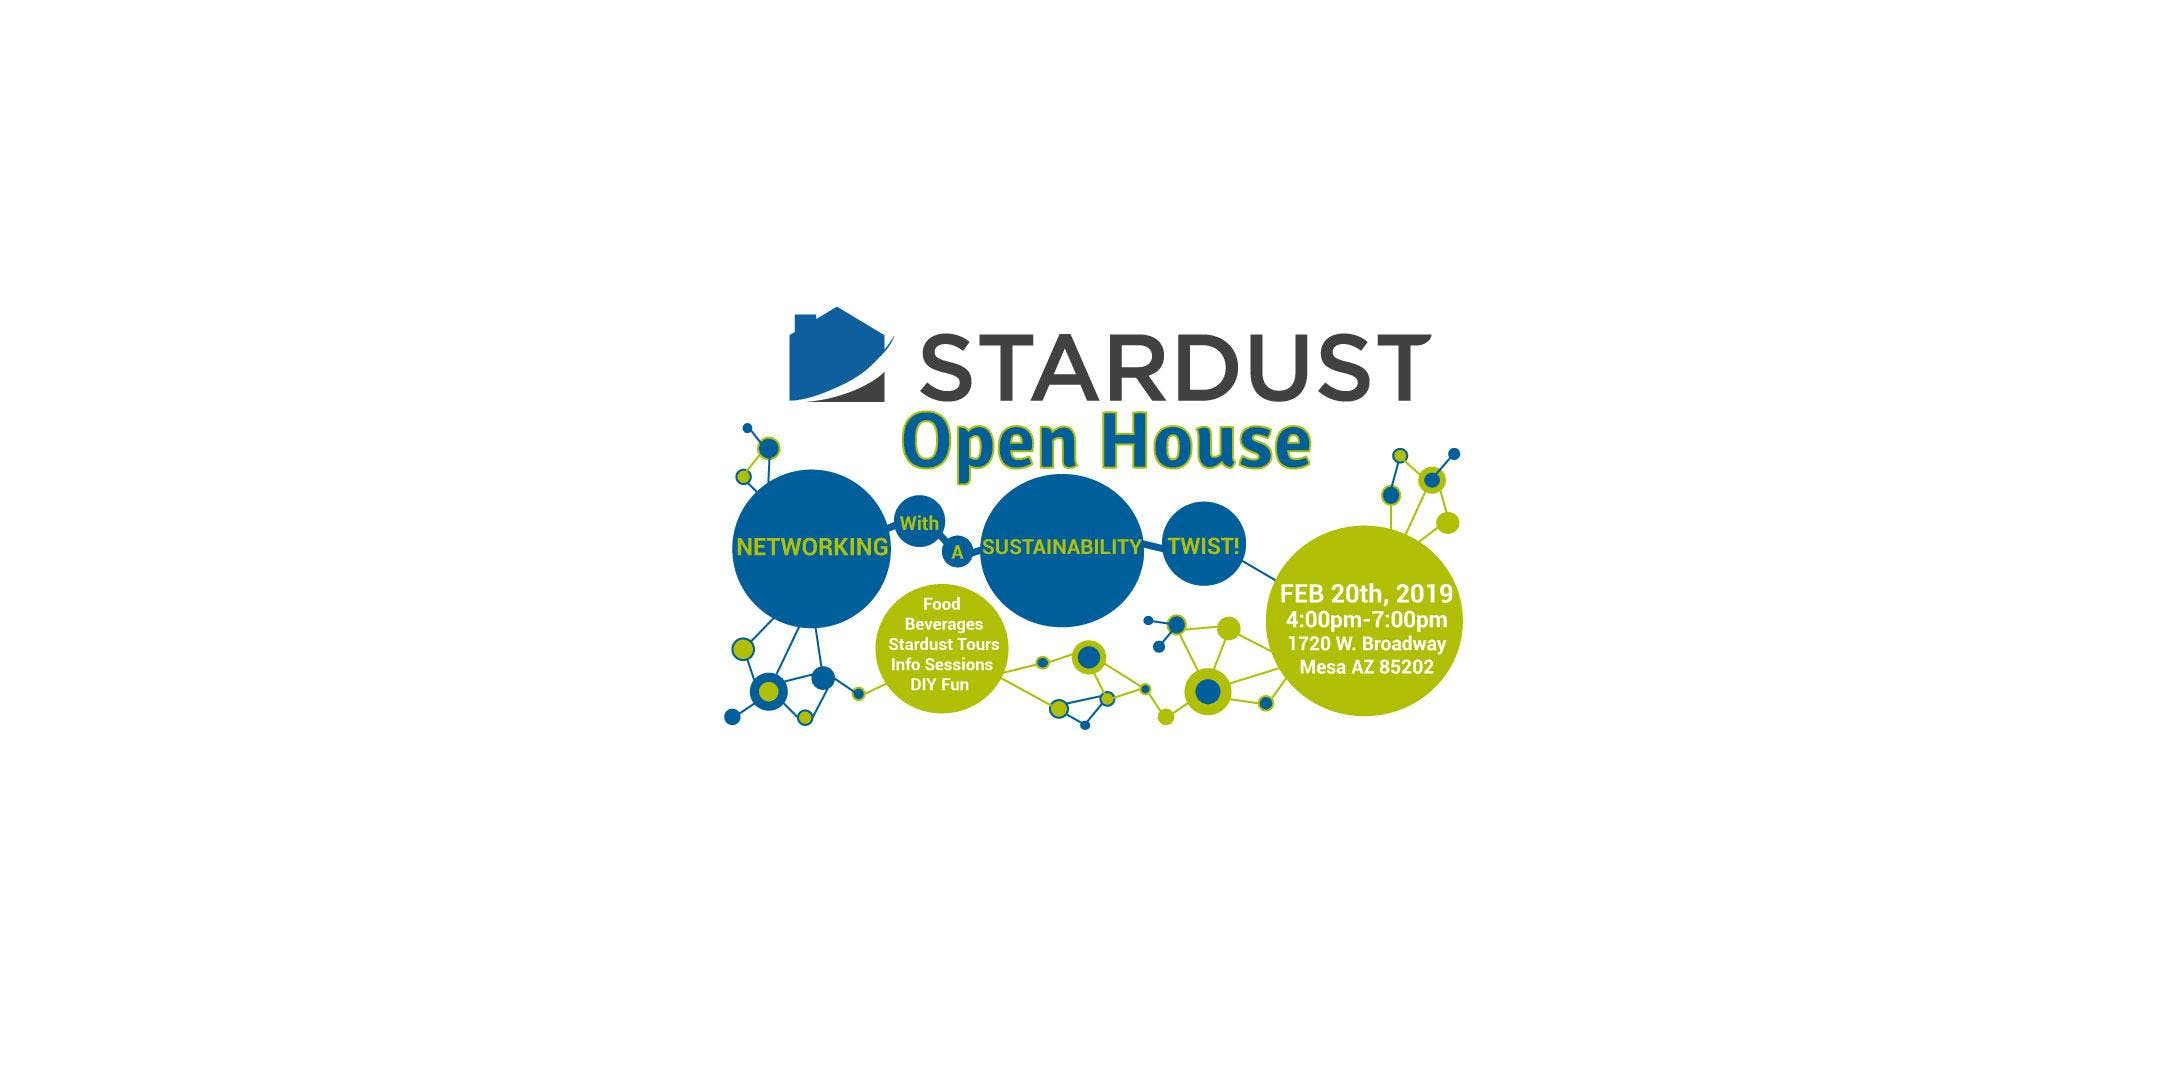 Stardust Open House: Networking with a Sustainability Twist!